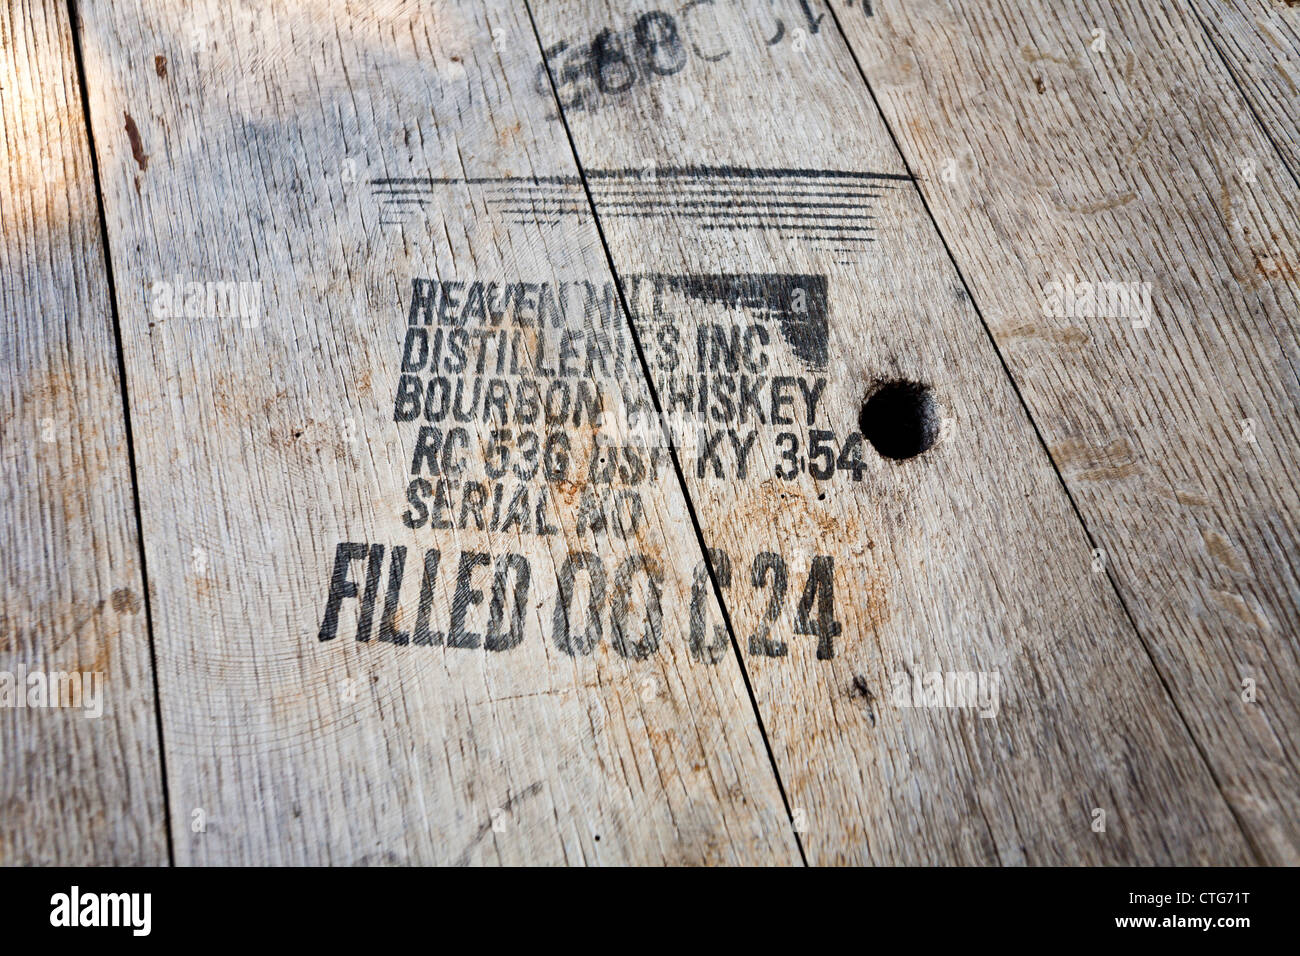 Wooden bourbon whiskey barrel top from Heaven Hill Distilleries - Stock Image